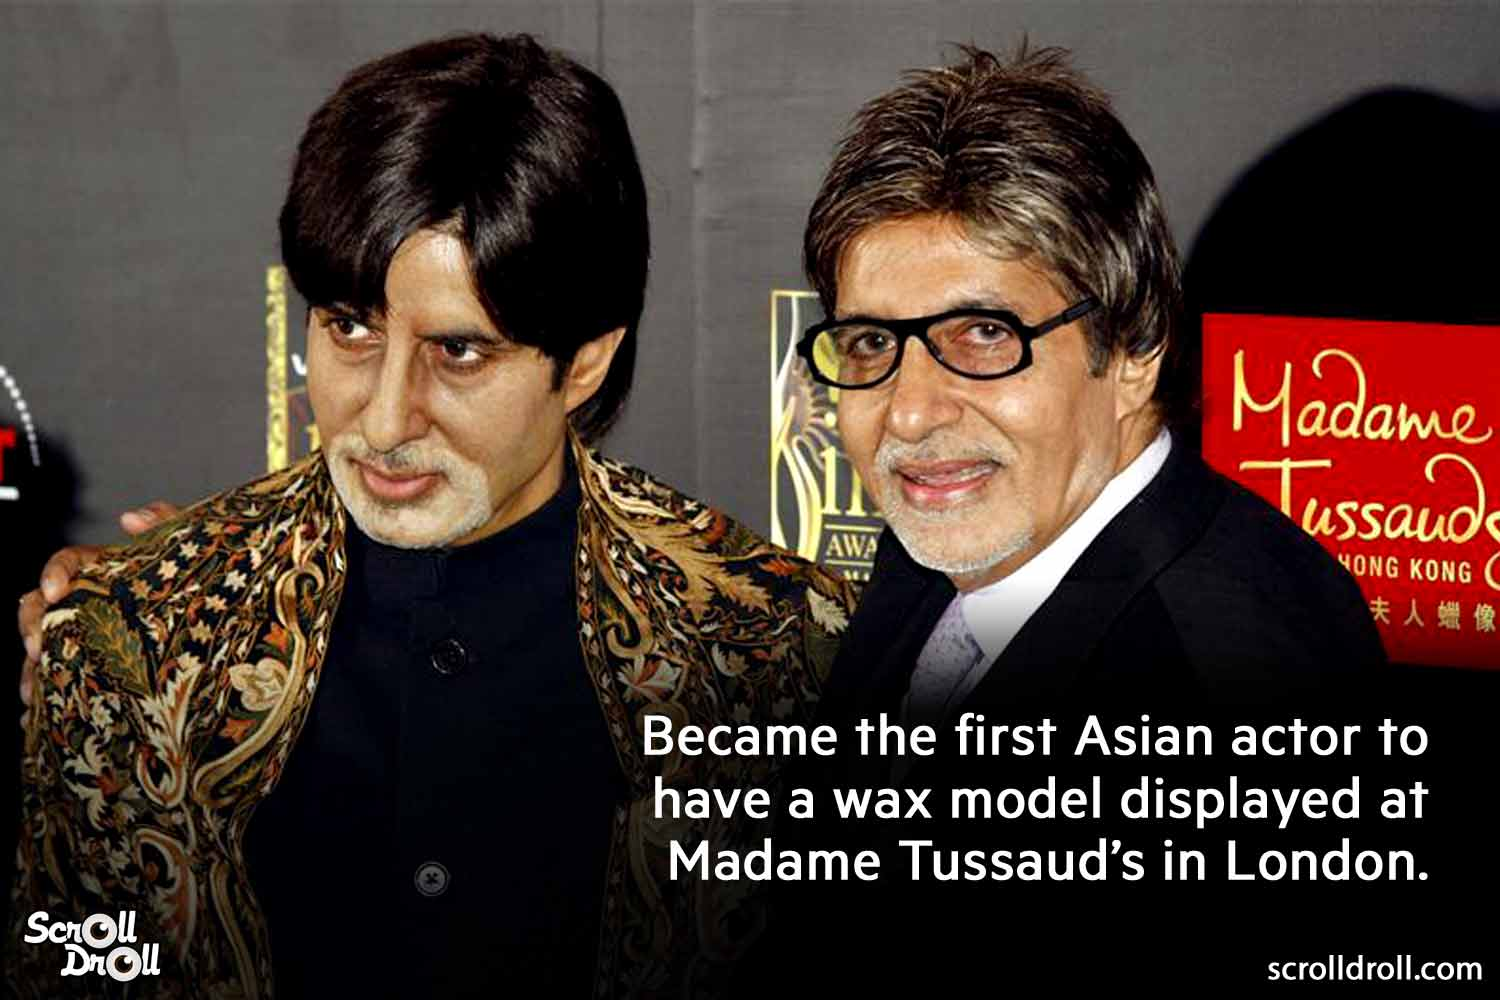 became the first Asian actor to have a wax model displayed at Madame Tussaud's in london -amitabh bachchan facts